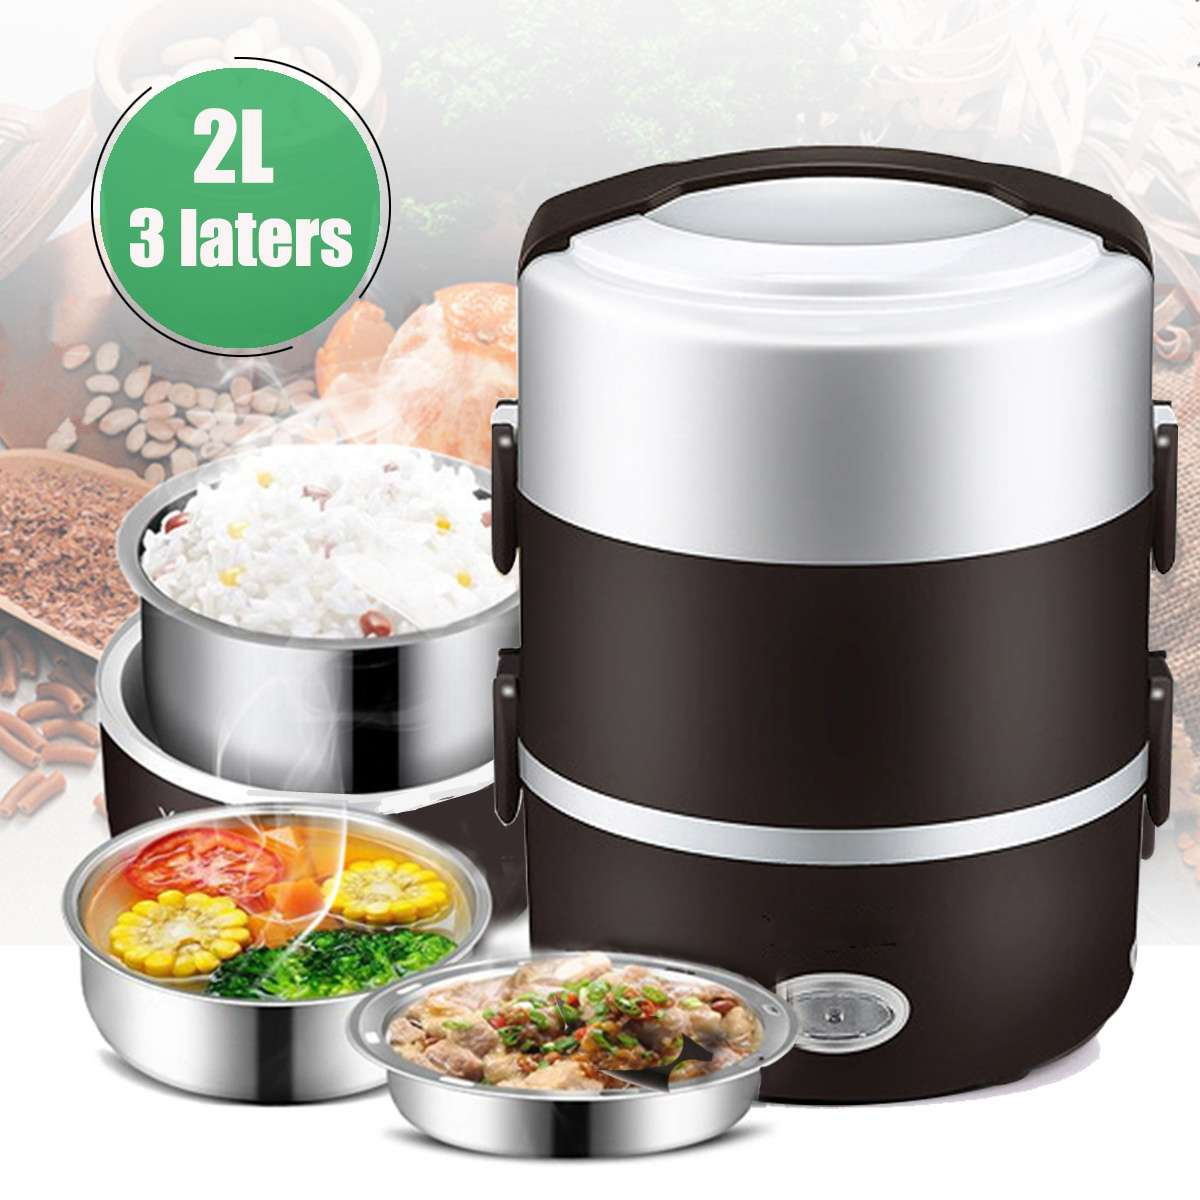 2L 3 Layer Portable Lunch Box Mini Electric Rice Cooker Steamer Meal Thermal Heating Automatic Food Container Warmer Cooking Pot portable 12v car electric heating lunch box rice cooker food warmer 1 05l 40w